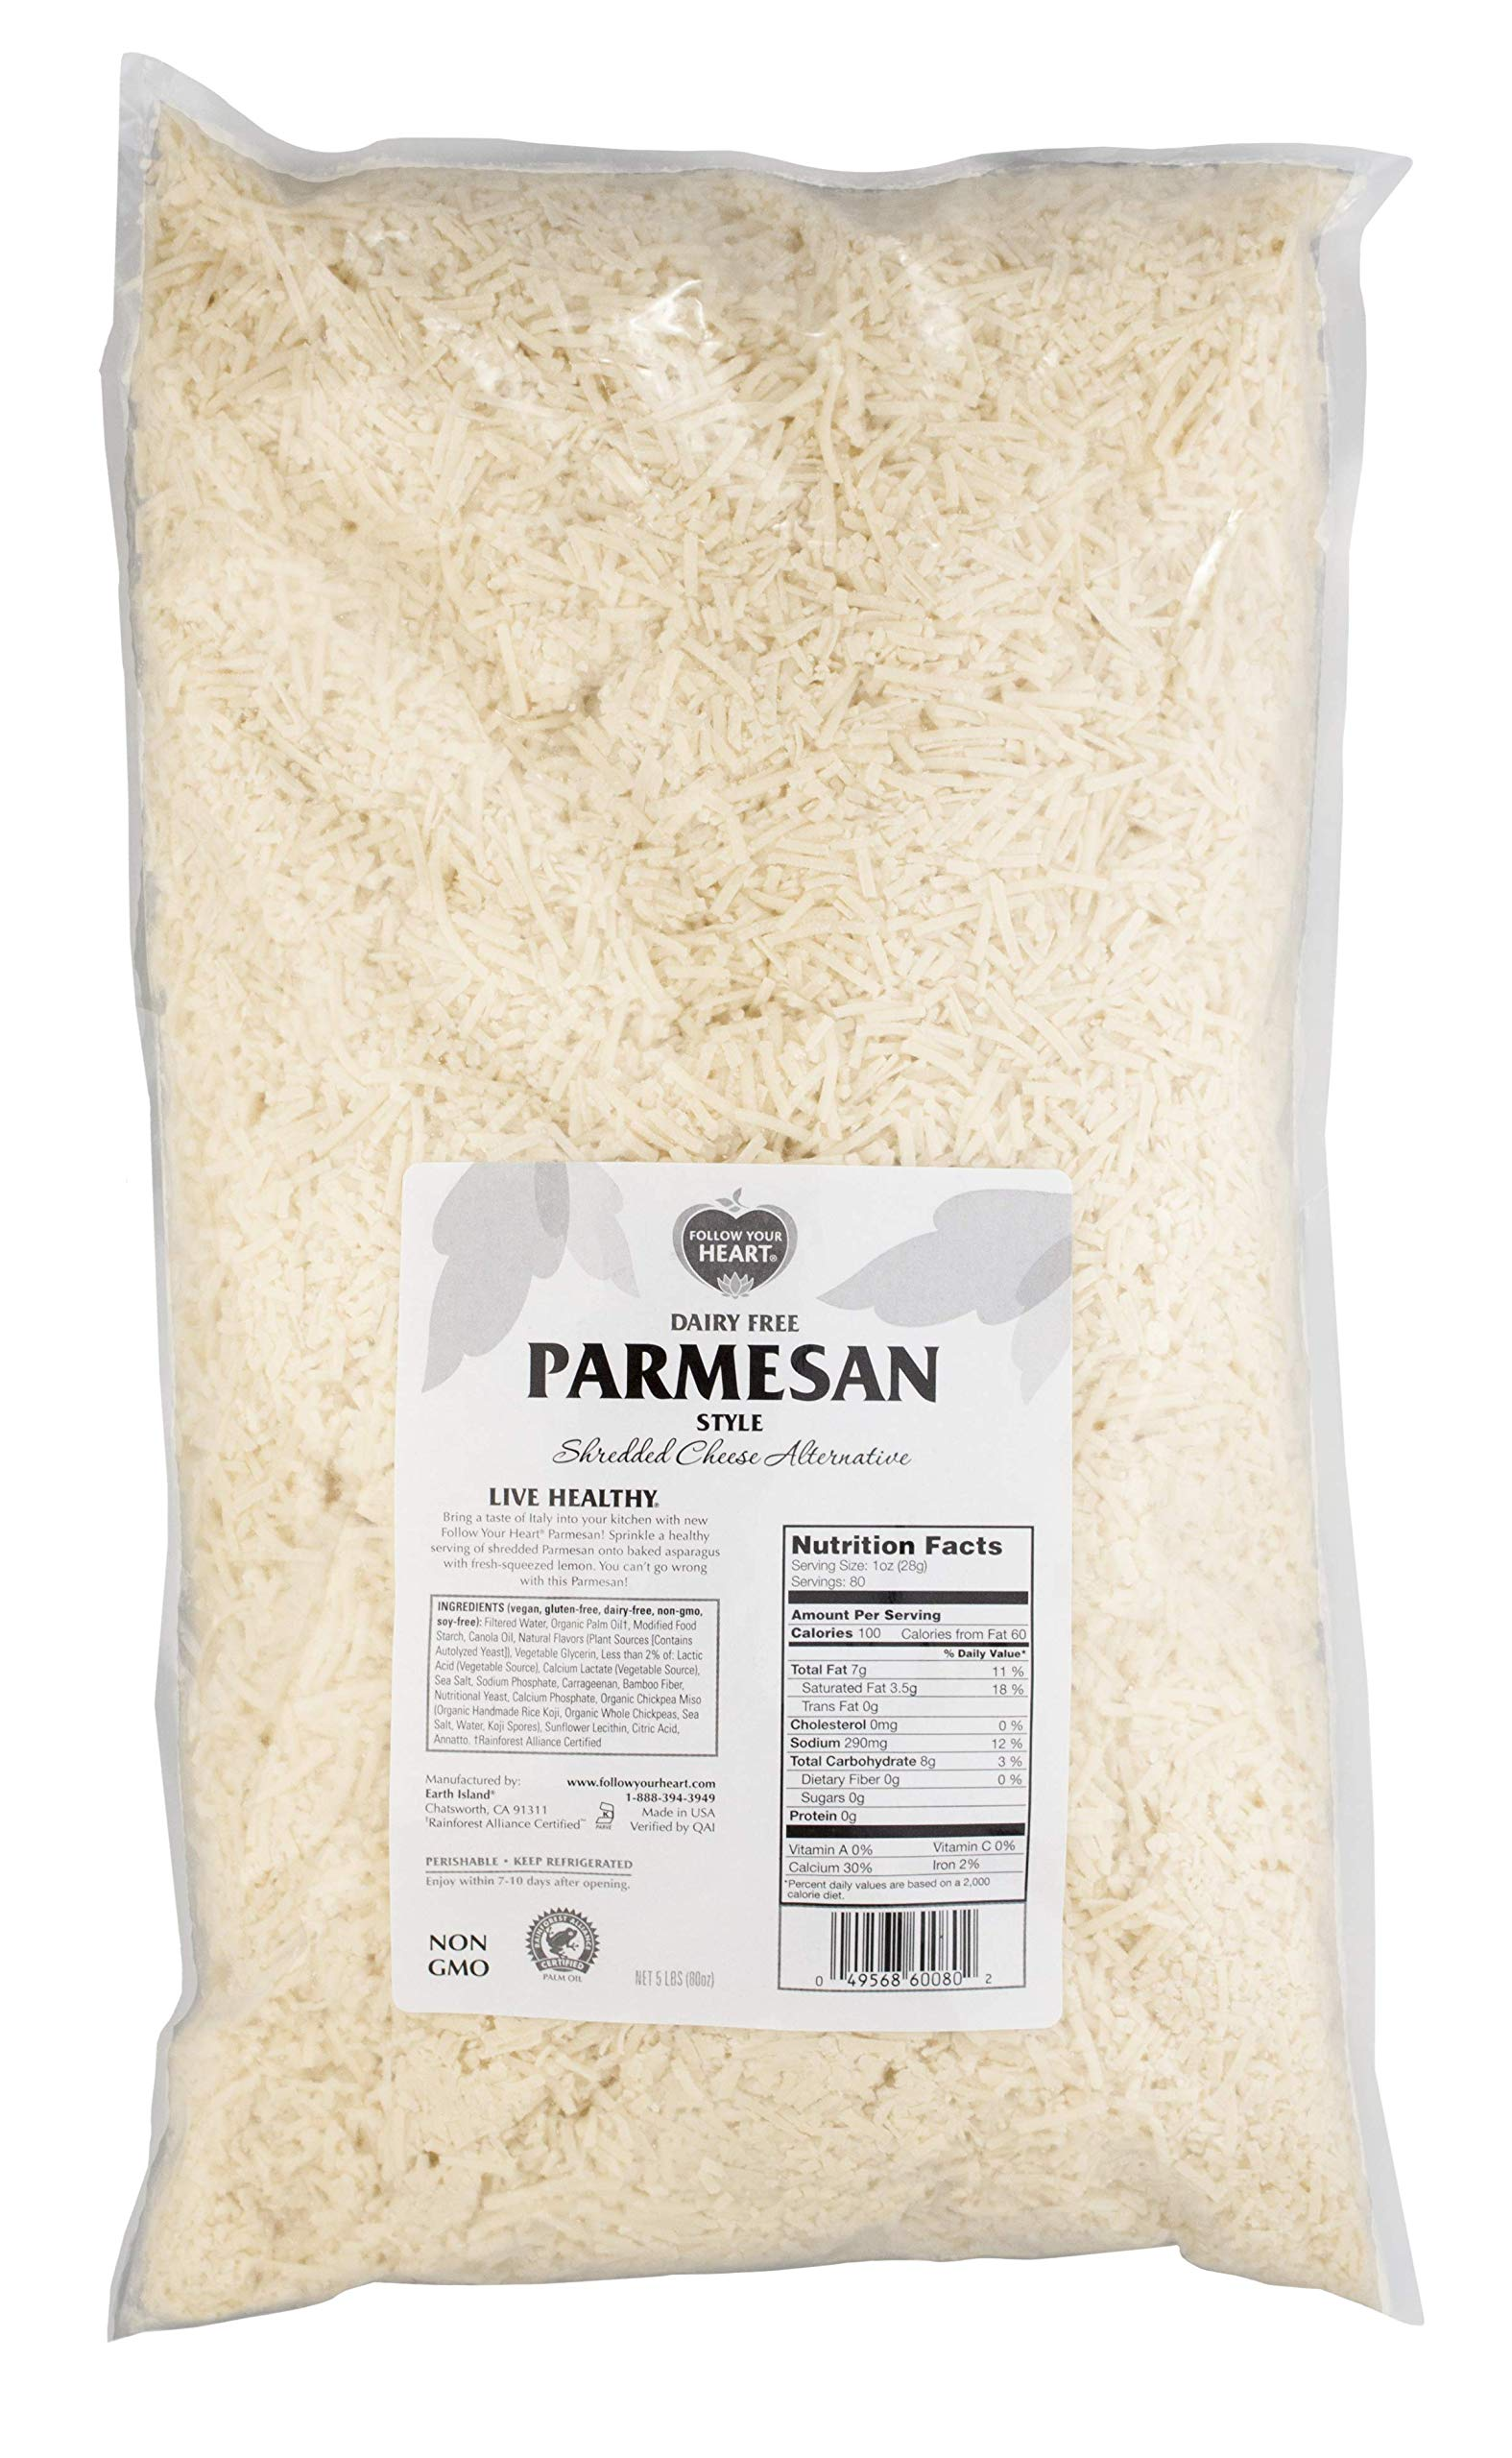 Follow Your Heart Dairy Free Vegan Shredded Parmesan Cheese Alternative 5 lb (Pack of 3)